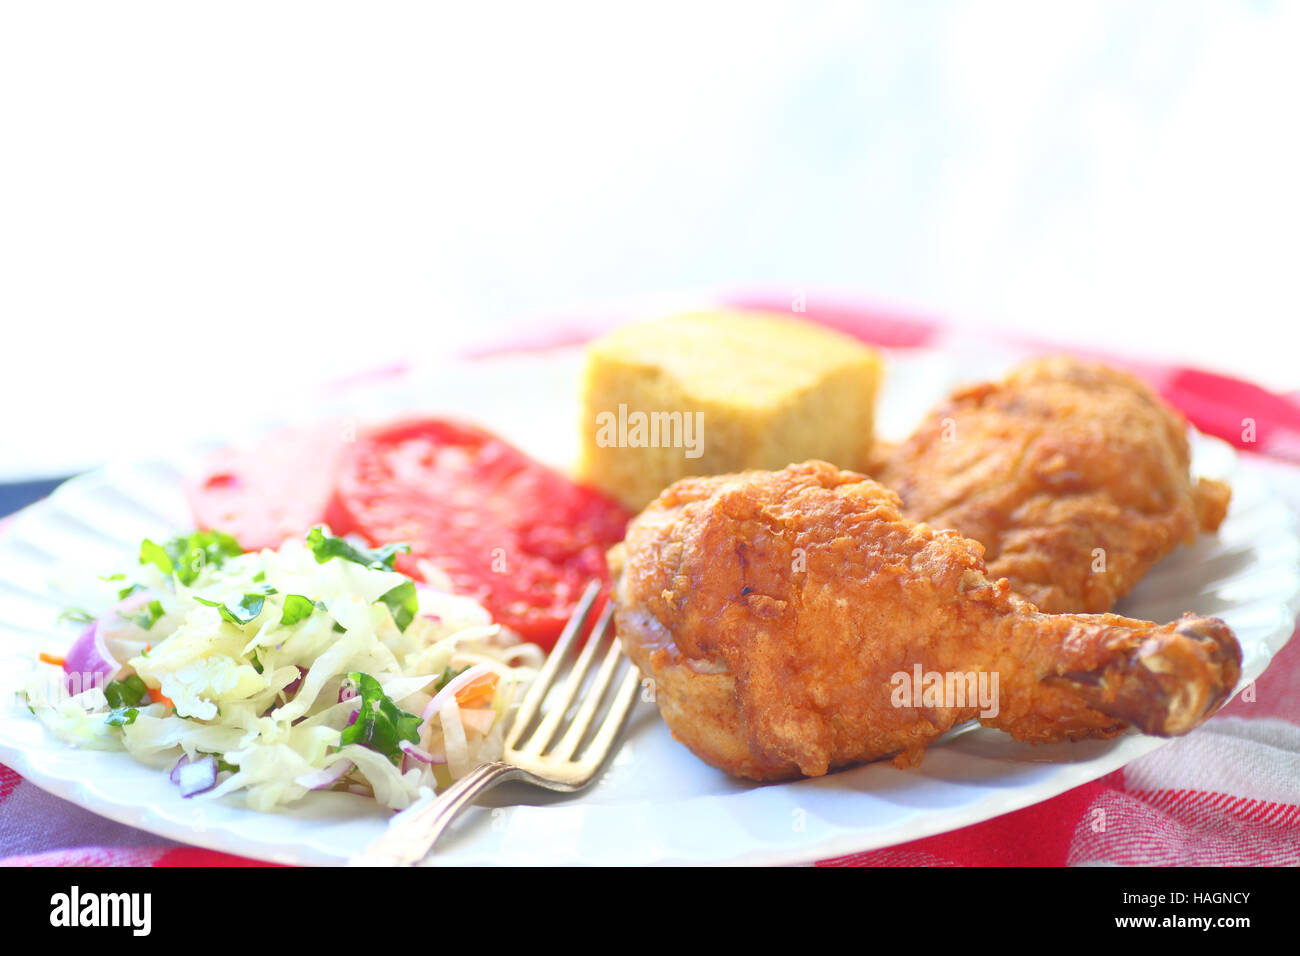 Fried chicken with coleslaw, tomatoes and cornbread with room for text - Stock Image